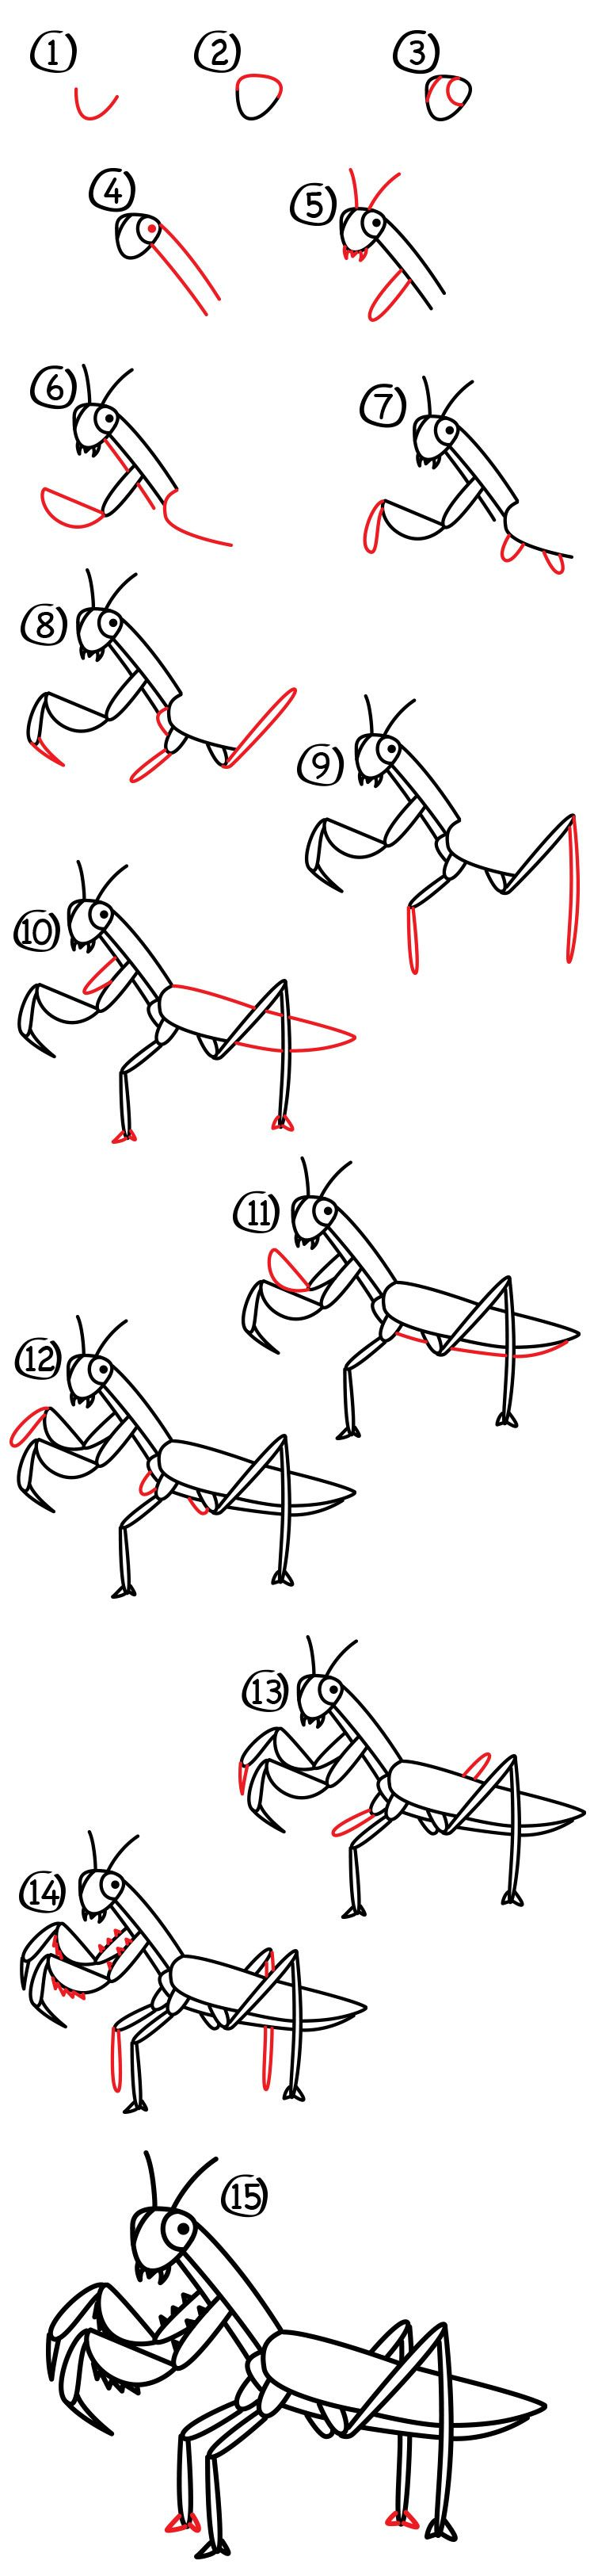 How To Draw A Praying Mantis Art For Kids Hub Art For Kids